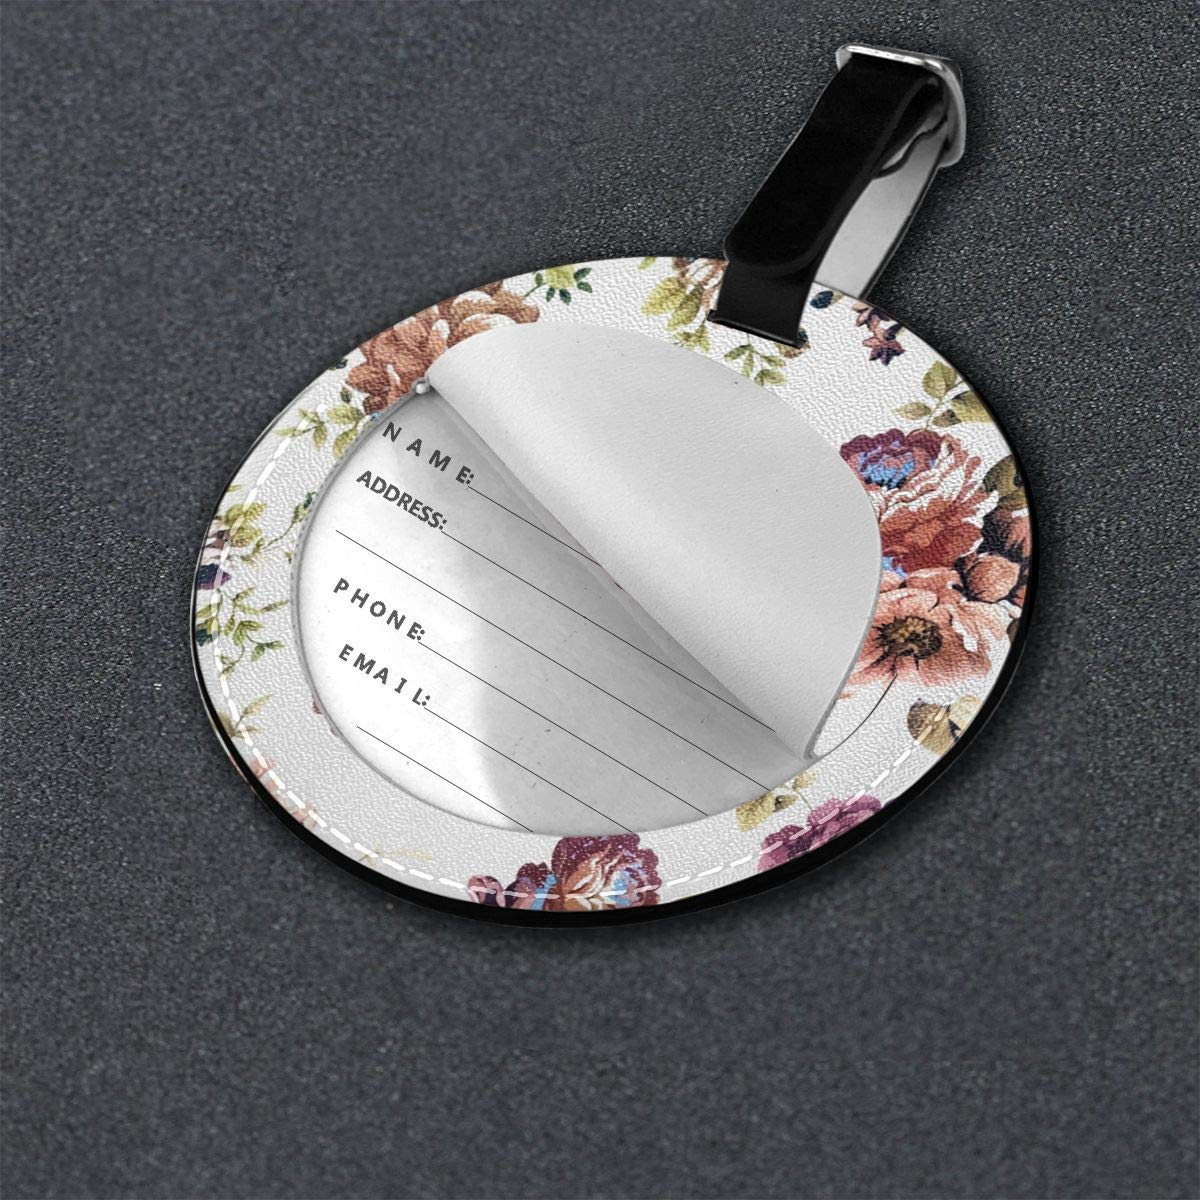 Jinsshop 4 PCS Leather Luggage Tag With Name ID Card Perfect To Quickly Spot Luggage Suitcase Vintage Floral Pattern